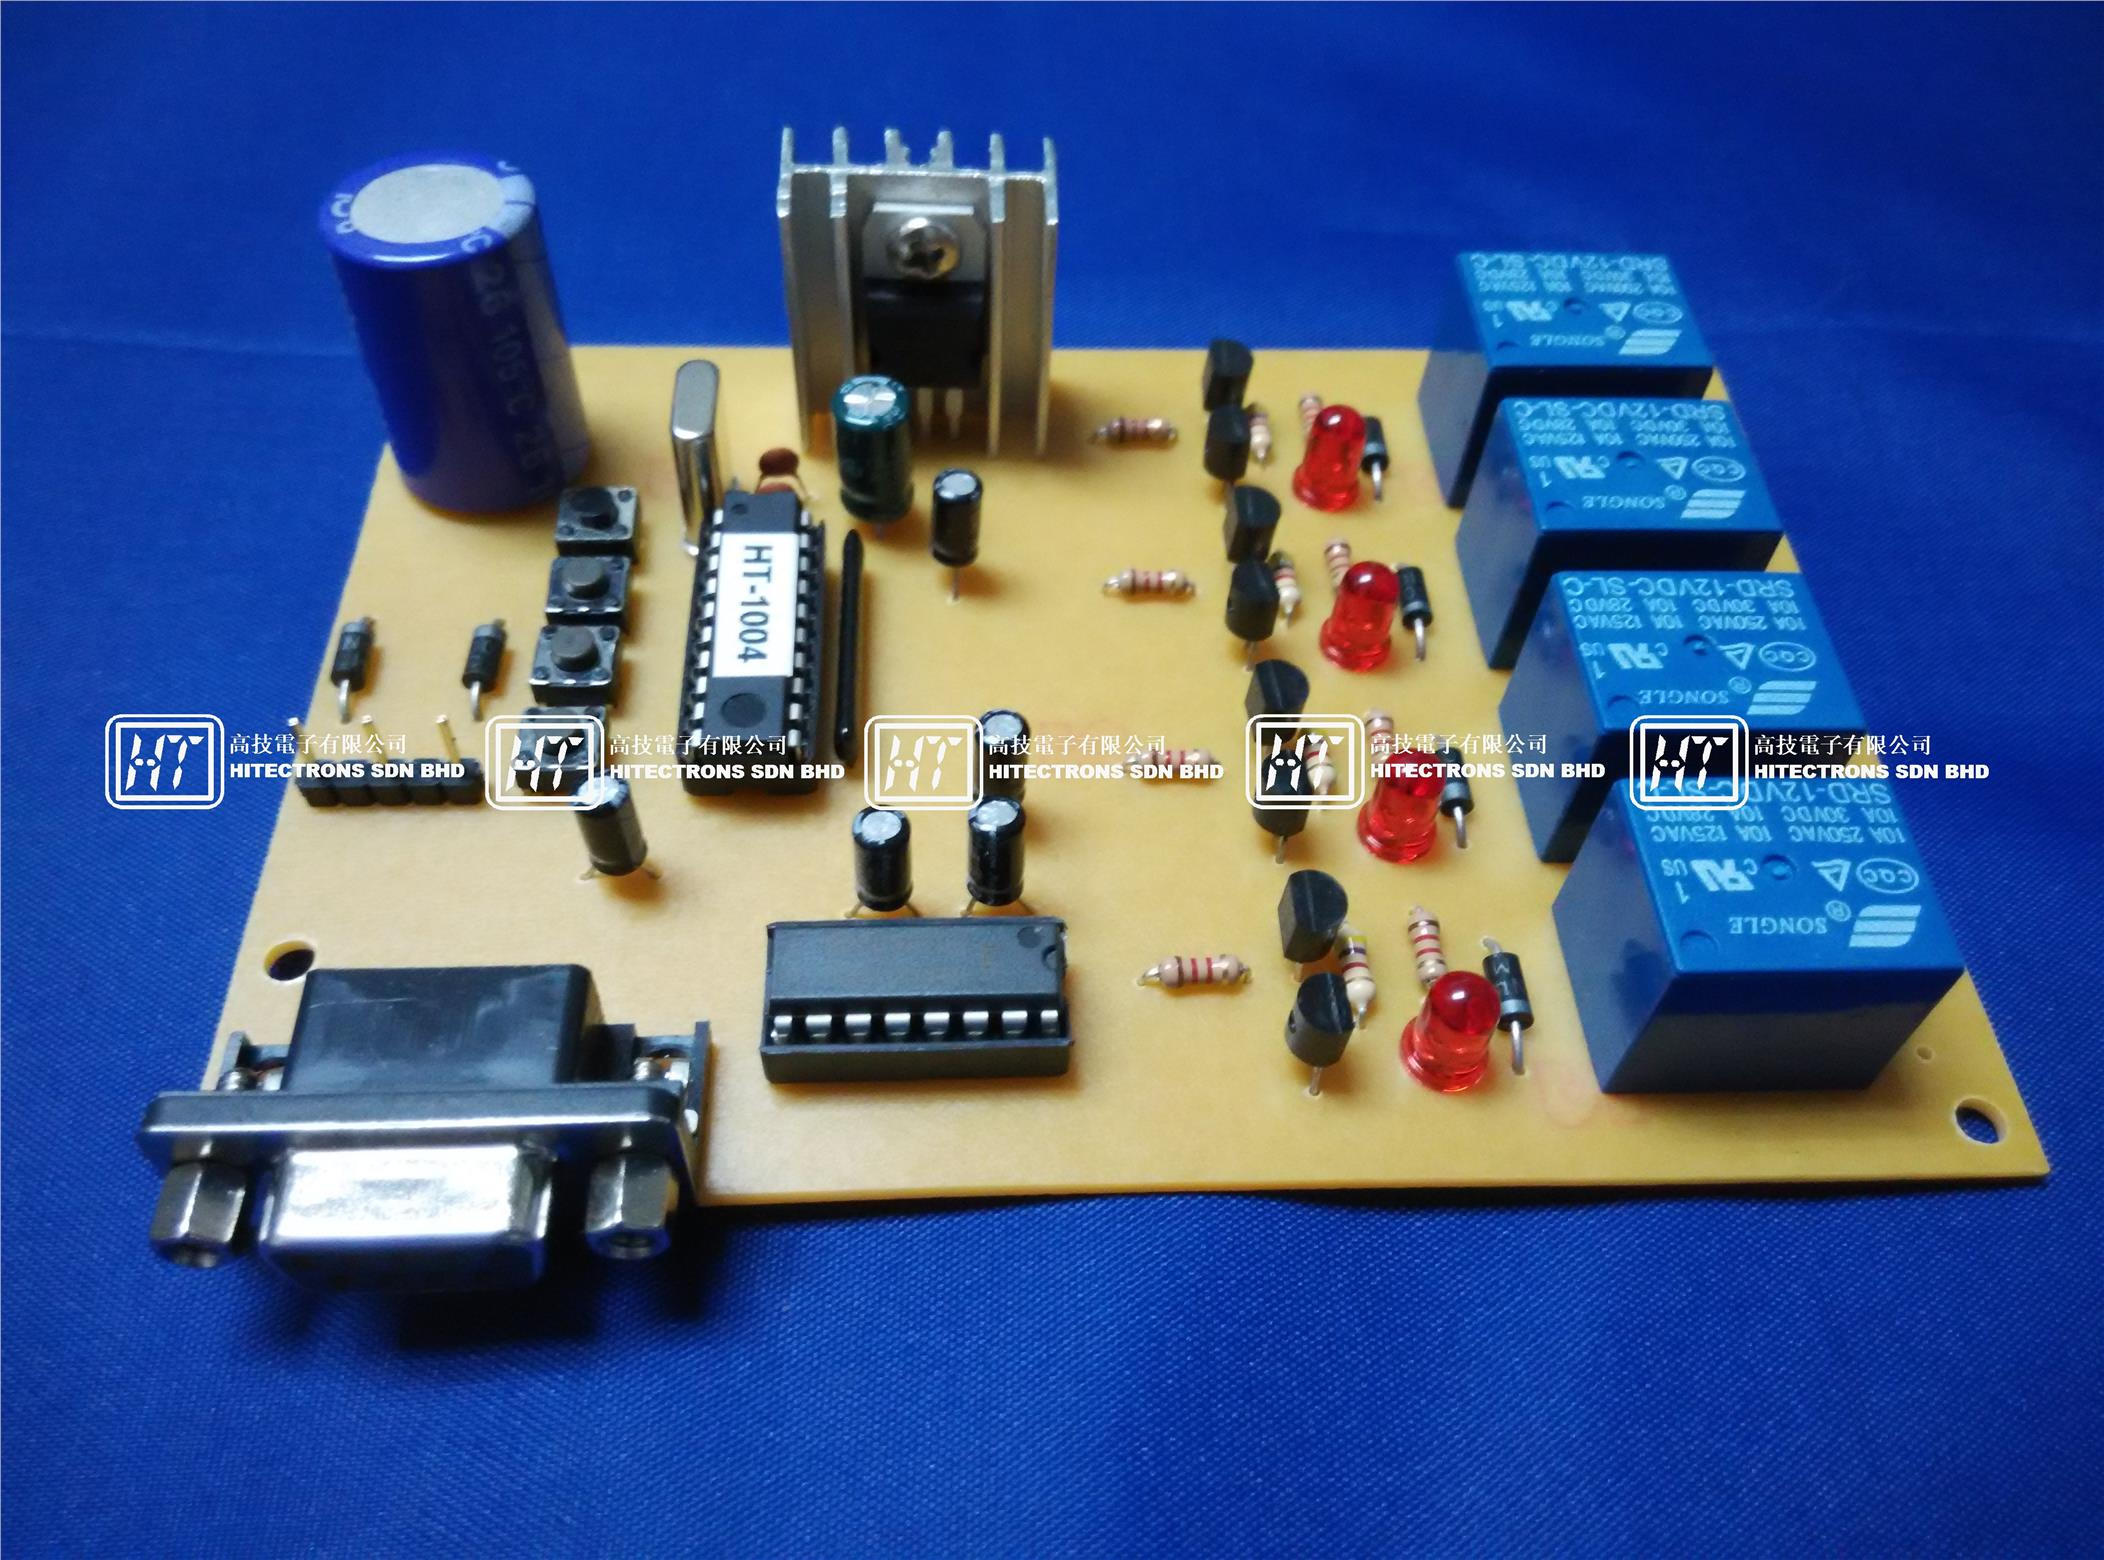 HT1004 4 Channel Relay Interface Card (RS232) / Electronics Kit